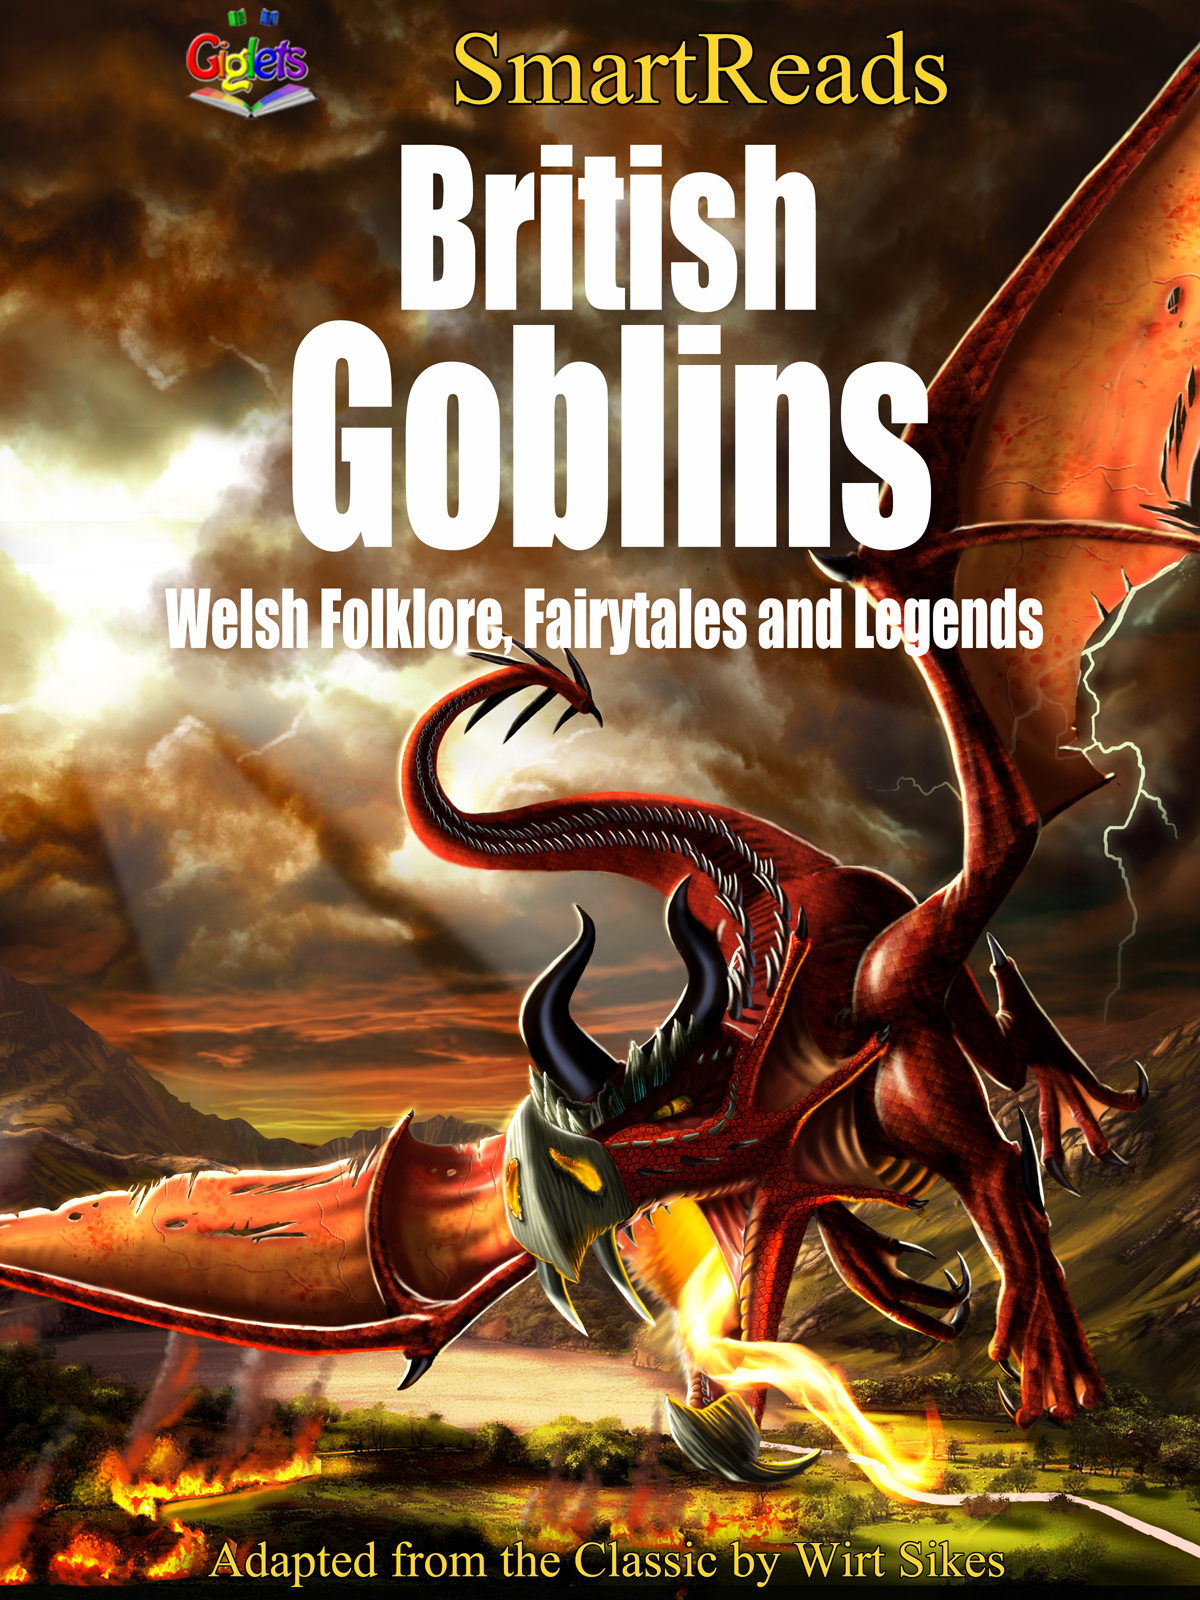 SmartReads British Goblins Welsh Folklore, Fairytales and Legends